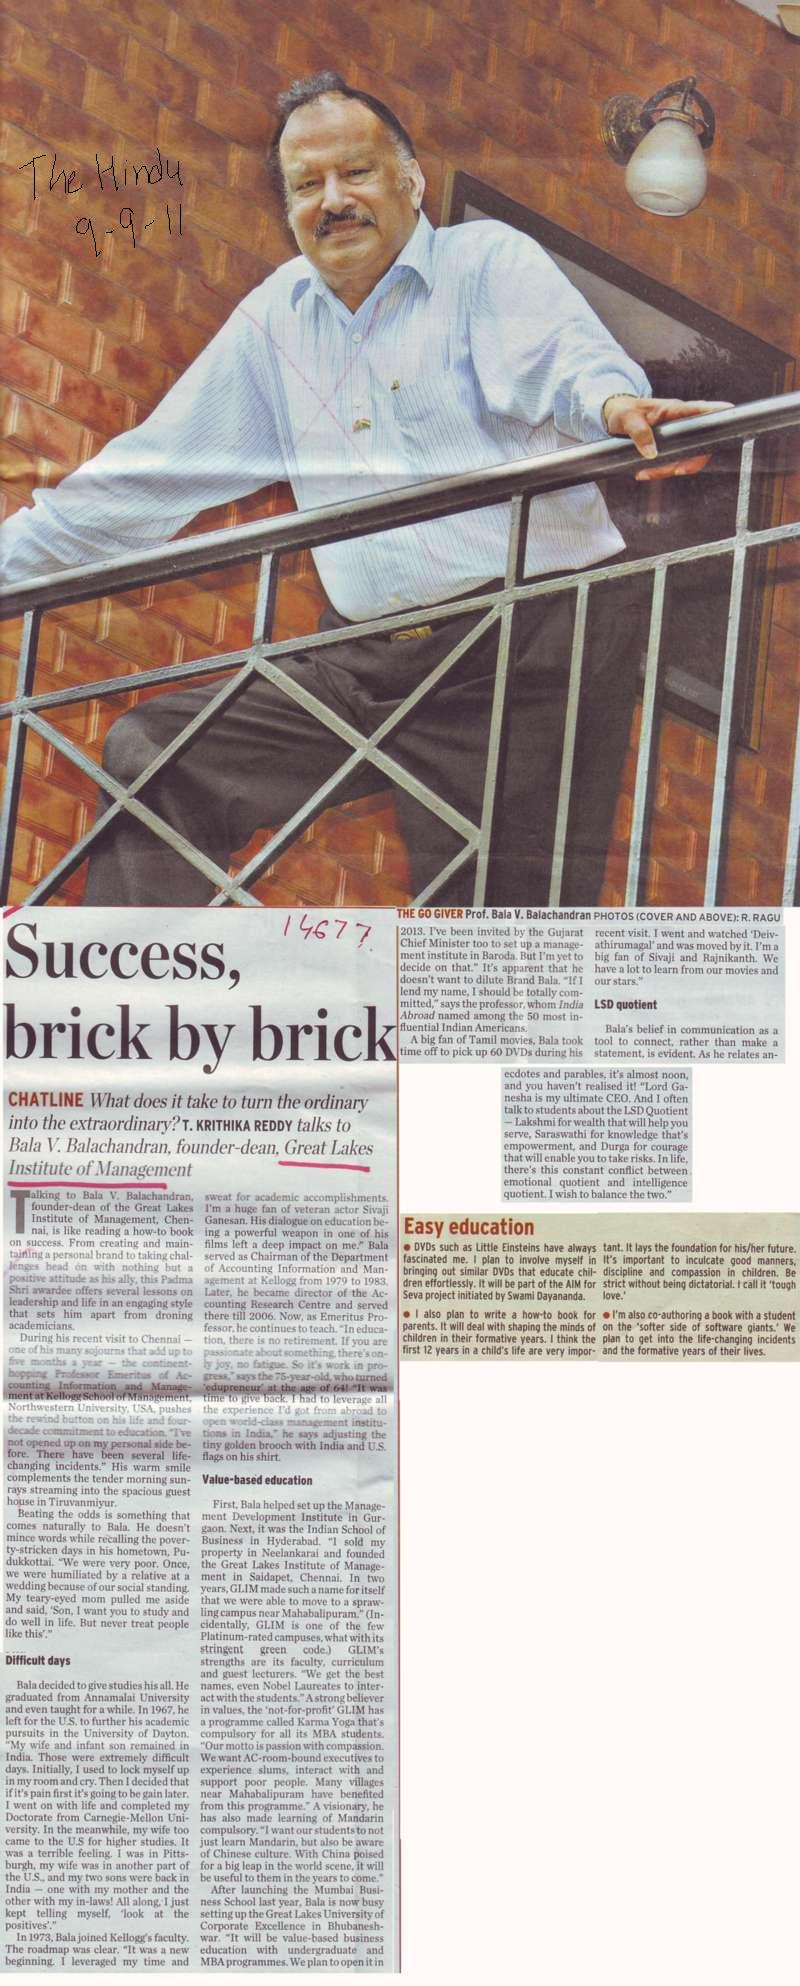 Success brick by brick (Great Lakes Institute of Management)